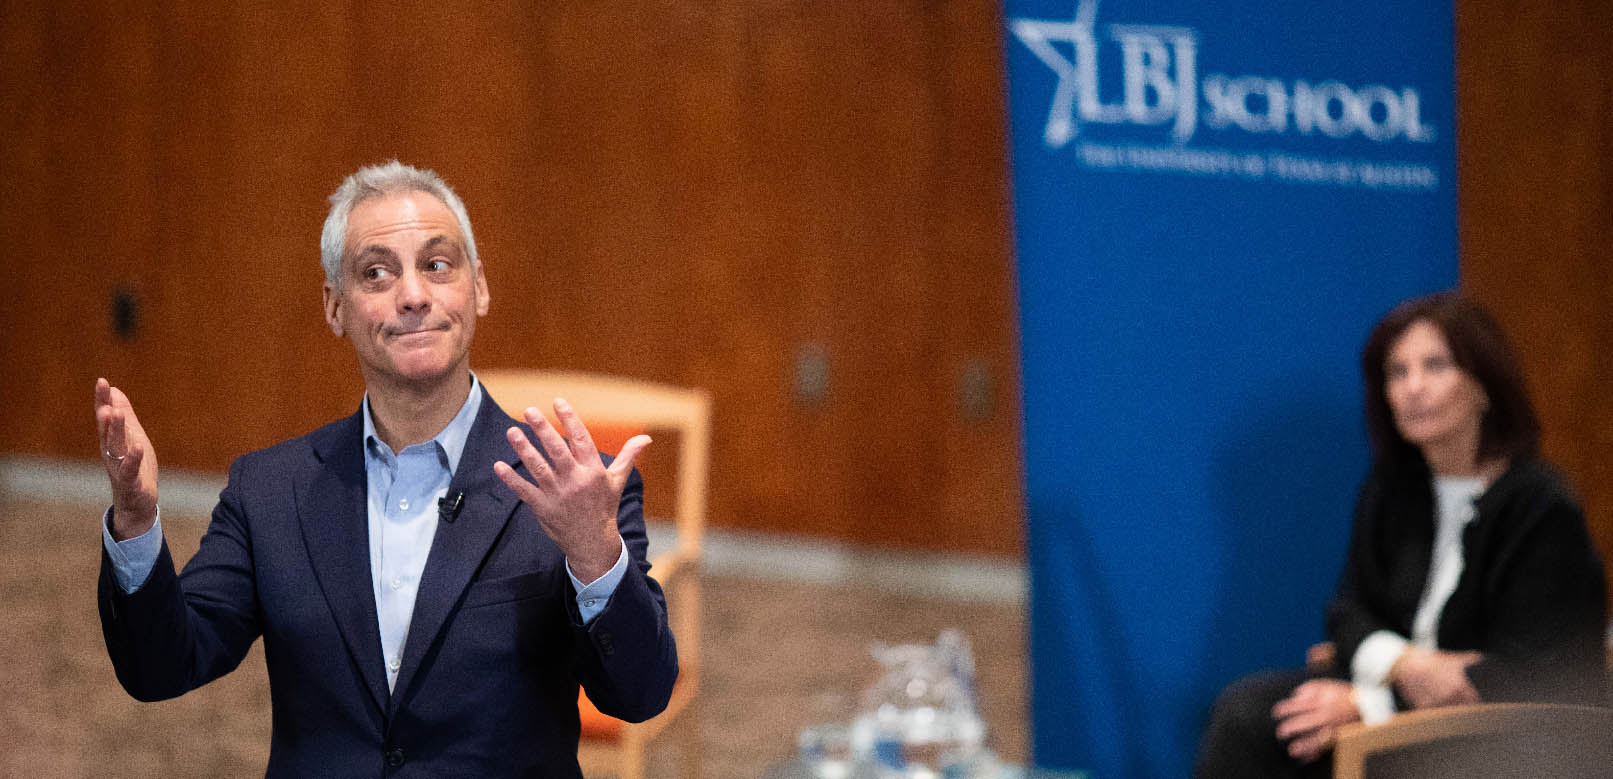 Chicago Mayor Rahm Emanuel talks with students and LBJ School Dean Angela Evans in Bass Lecture Hall